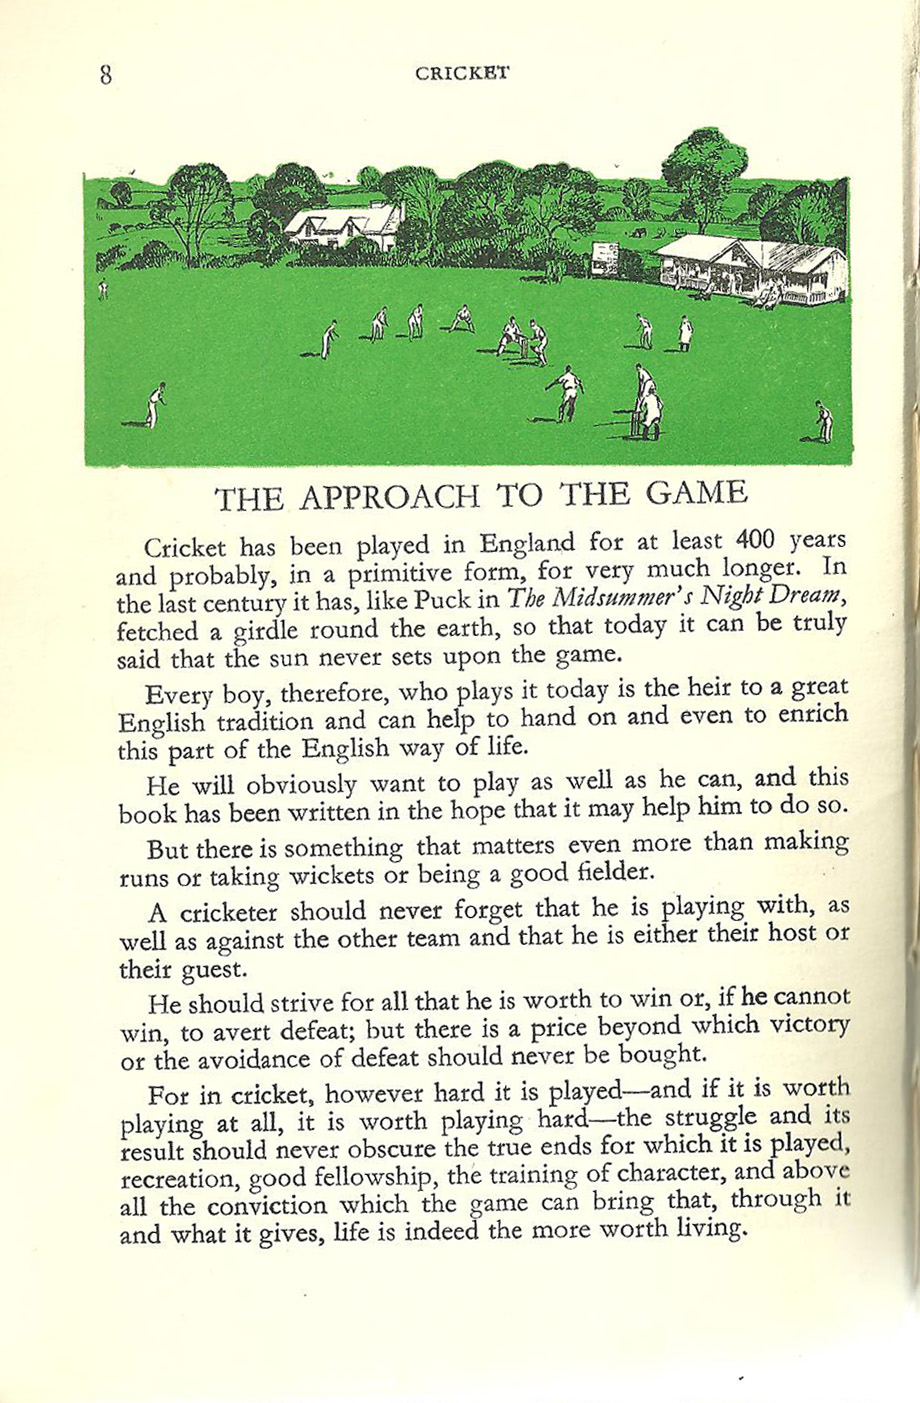 London Calling: PLAYING CRICKET